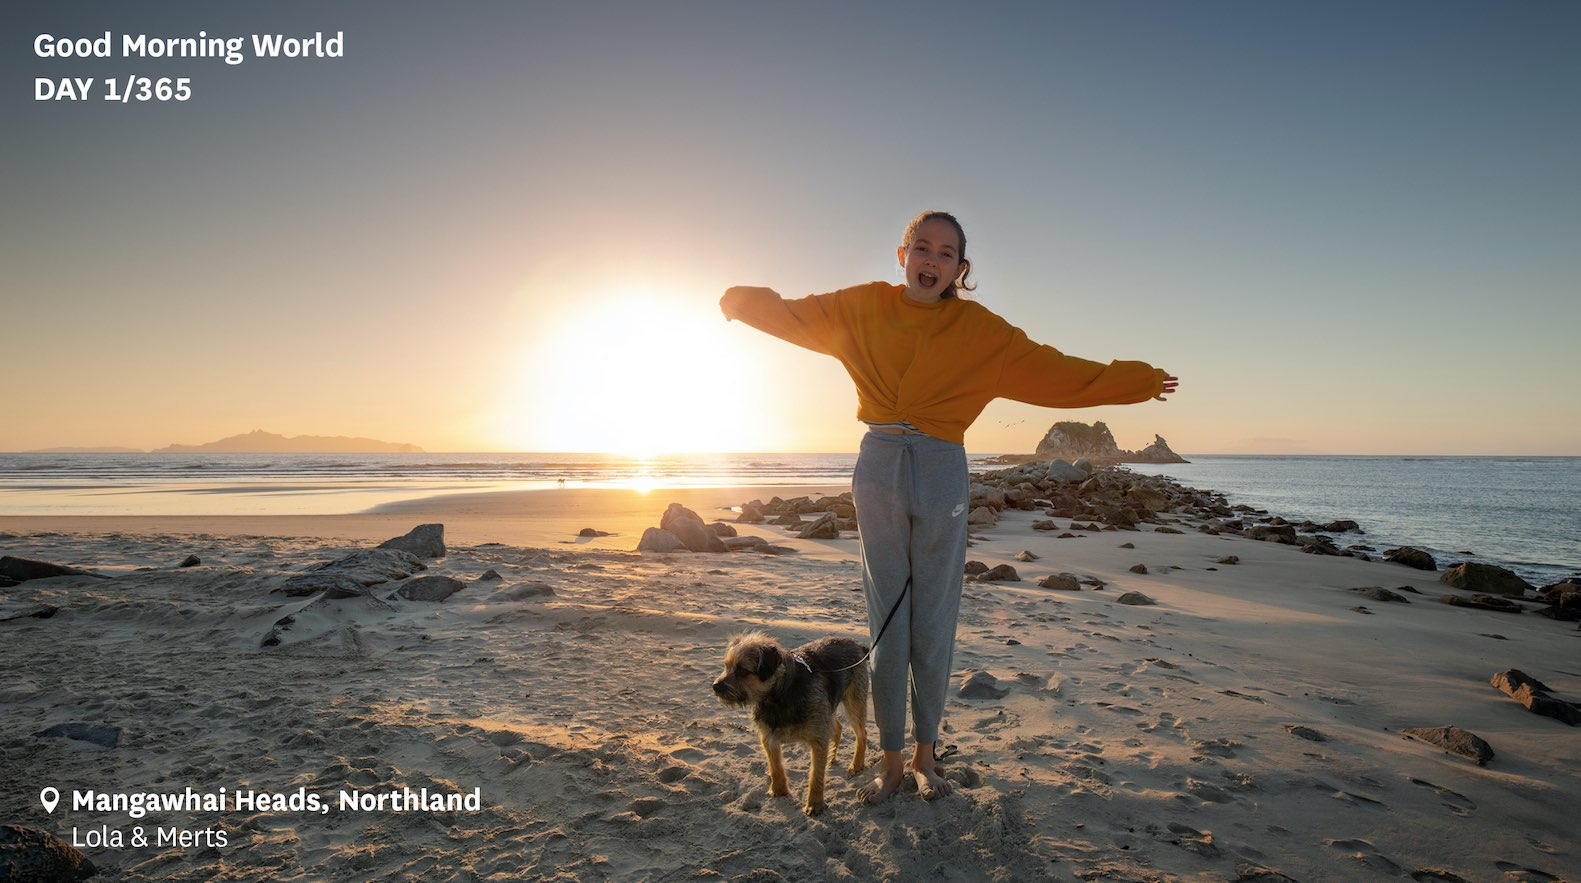 Special Group's 'Good Morning World' campaign for Tourism NZ voted world's most effective at Global Effie: Multi Region competition